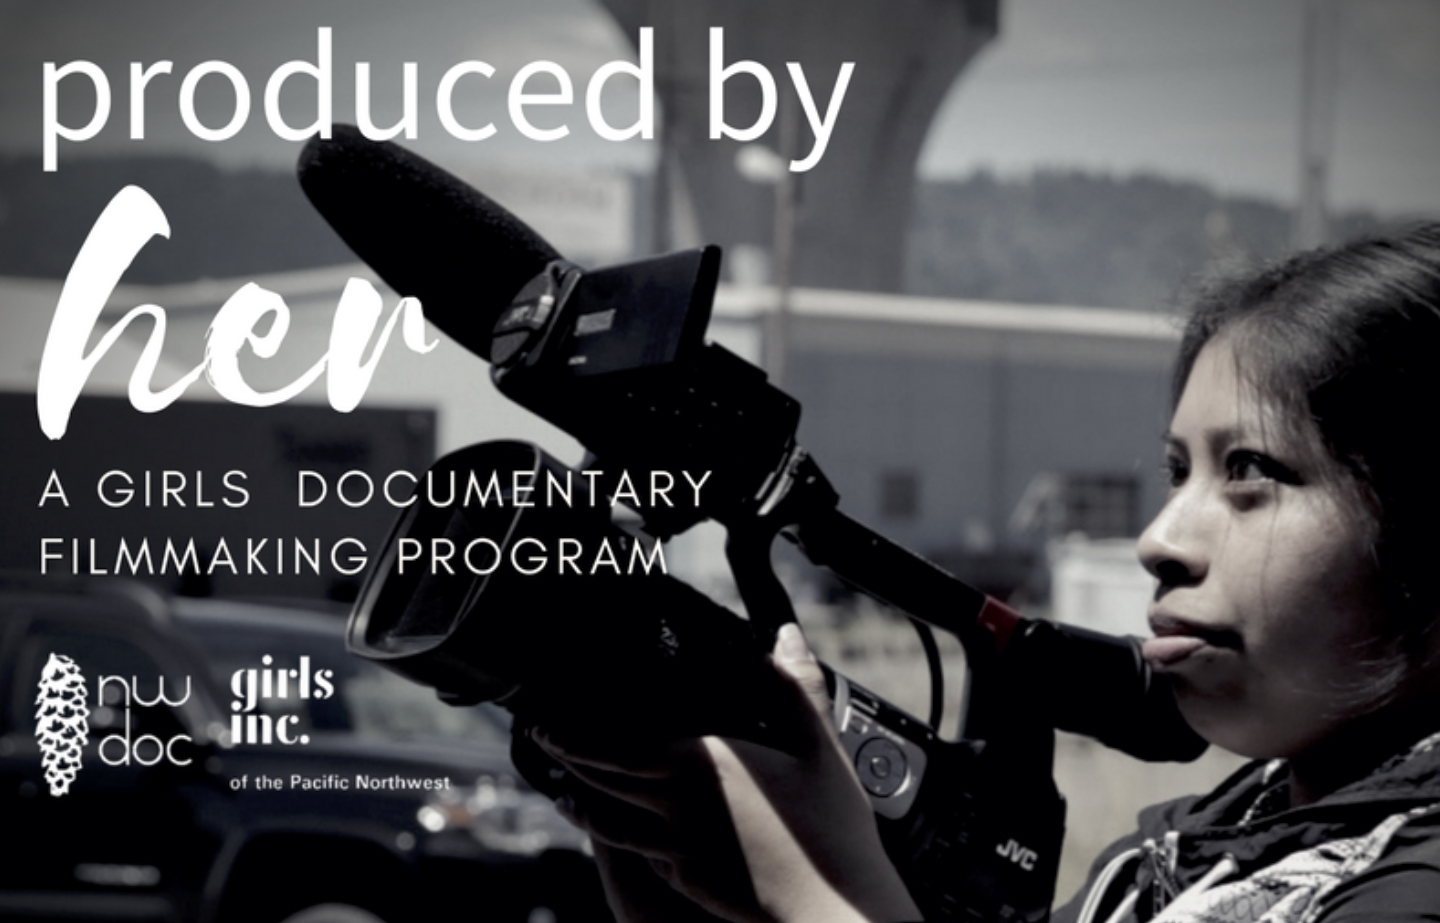 Film Screening - $25 to attend-all proceeds go to Girls, Inc. Location- NW Documentary @ 9 NE Tillamook